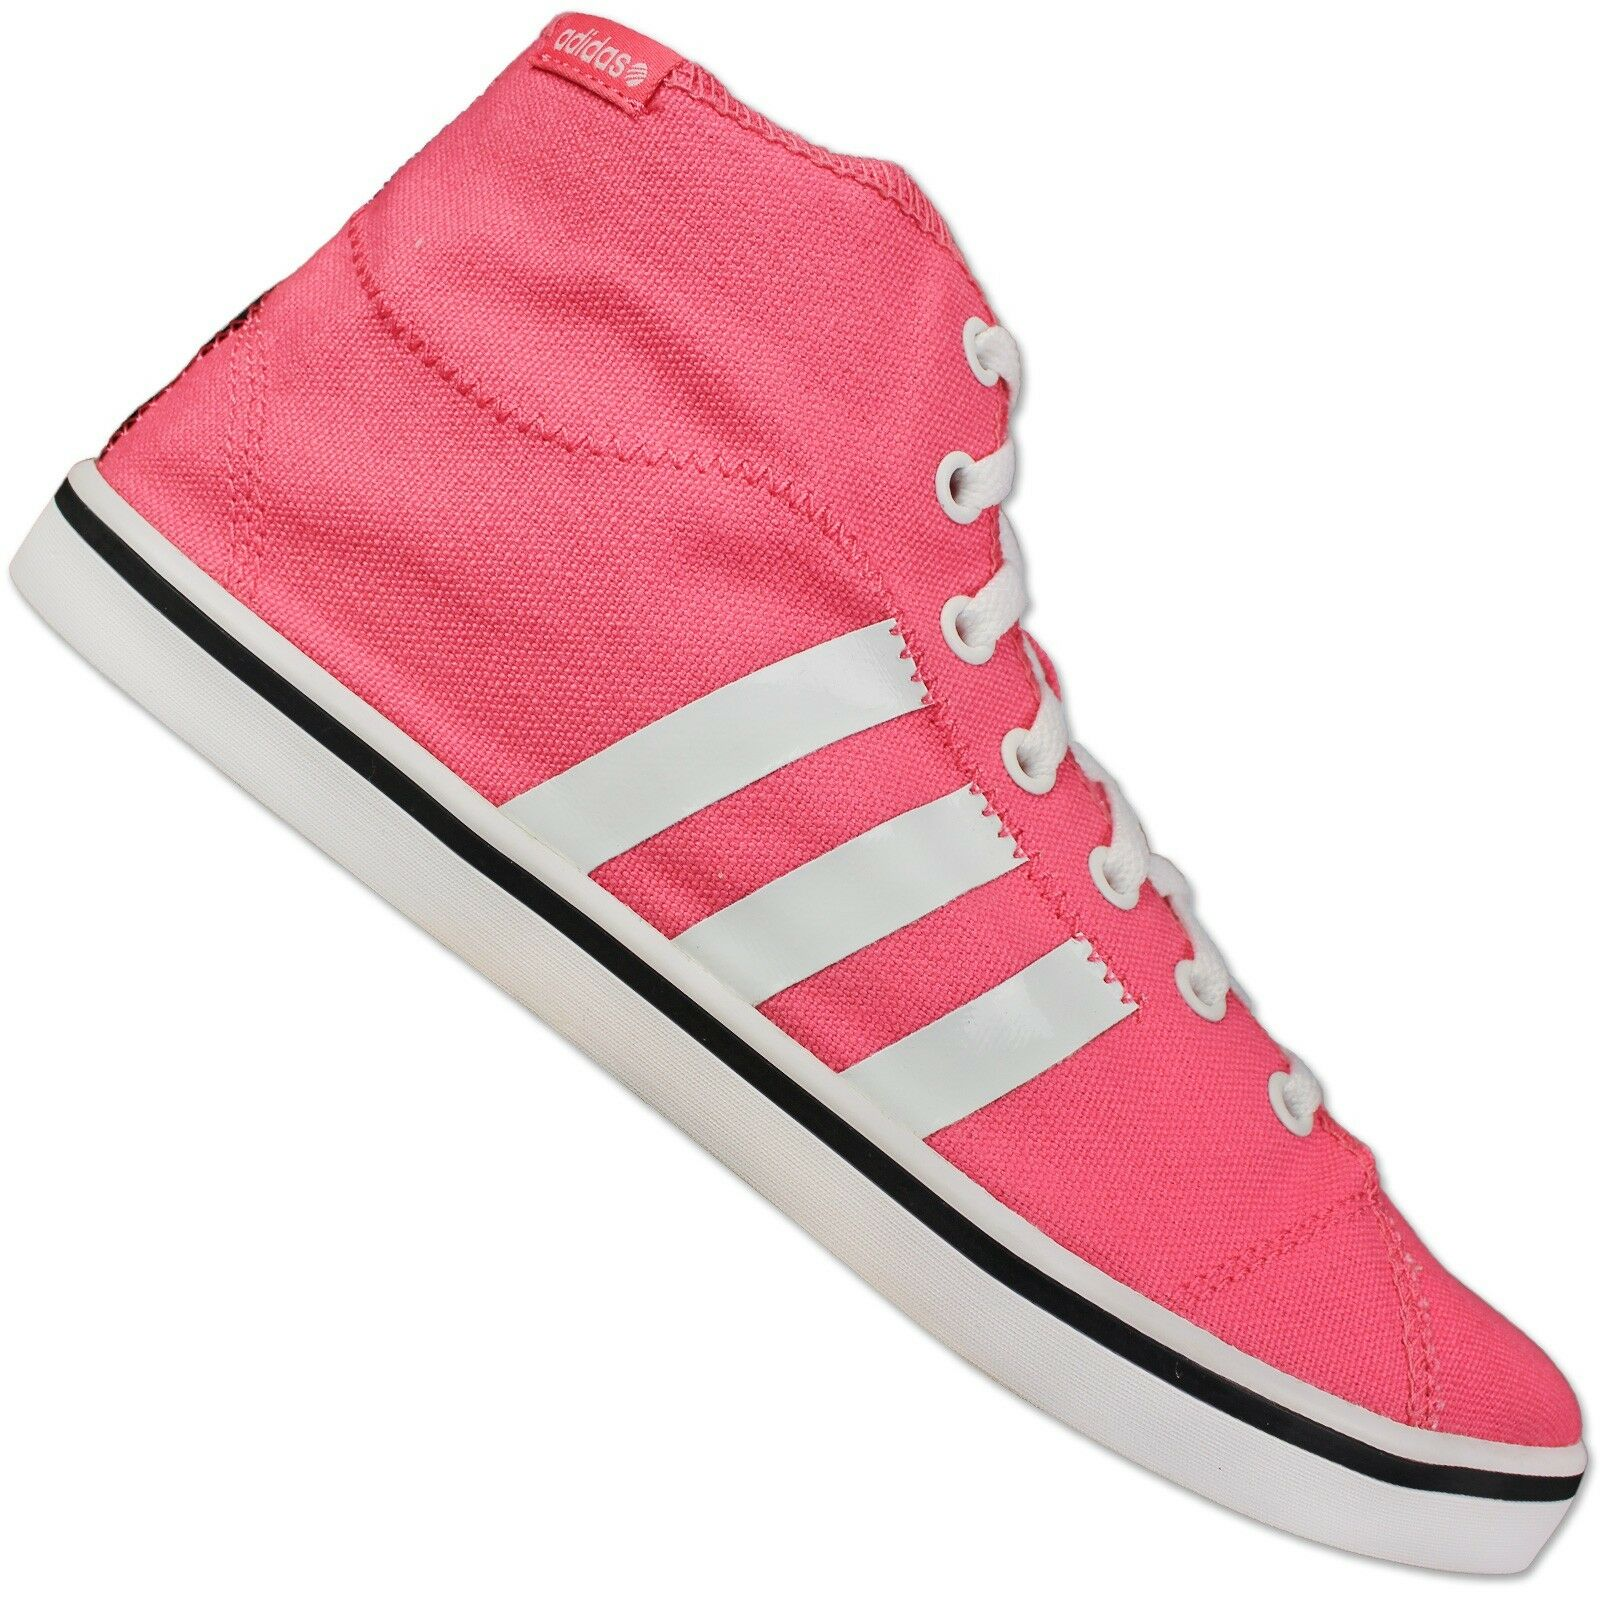 Adidas Neo Canvas VLNEO Bball Ladies Mid Top Trainers Summer  Chaussures  rose 39 1/3